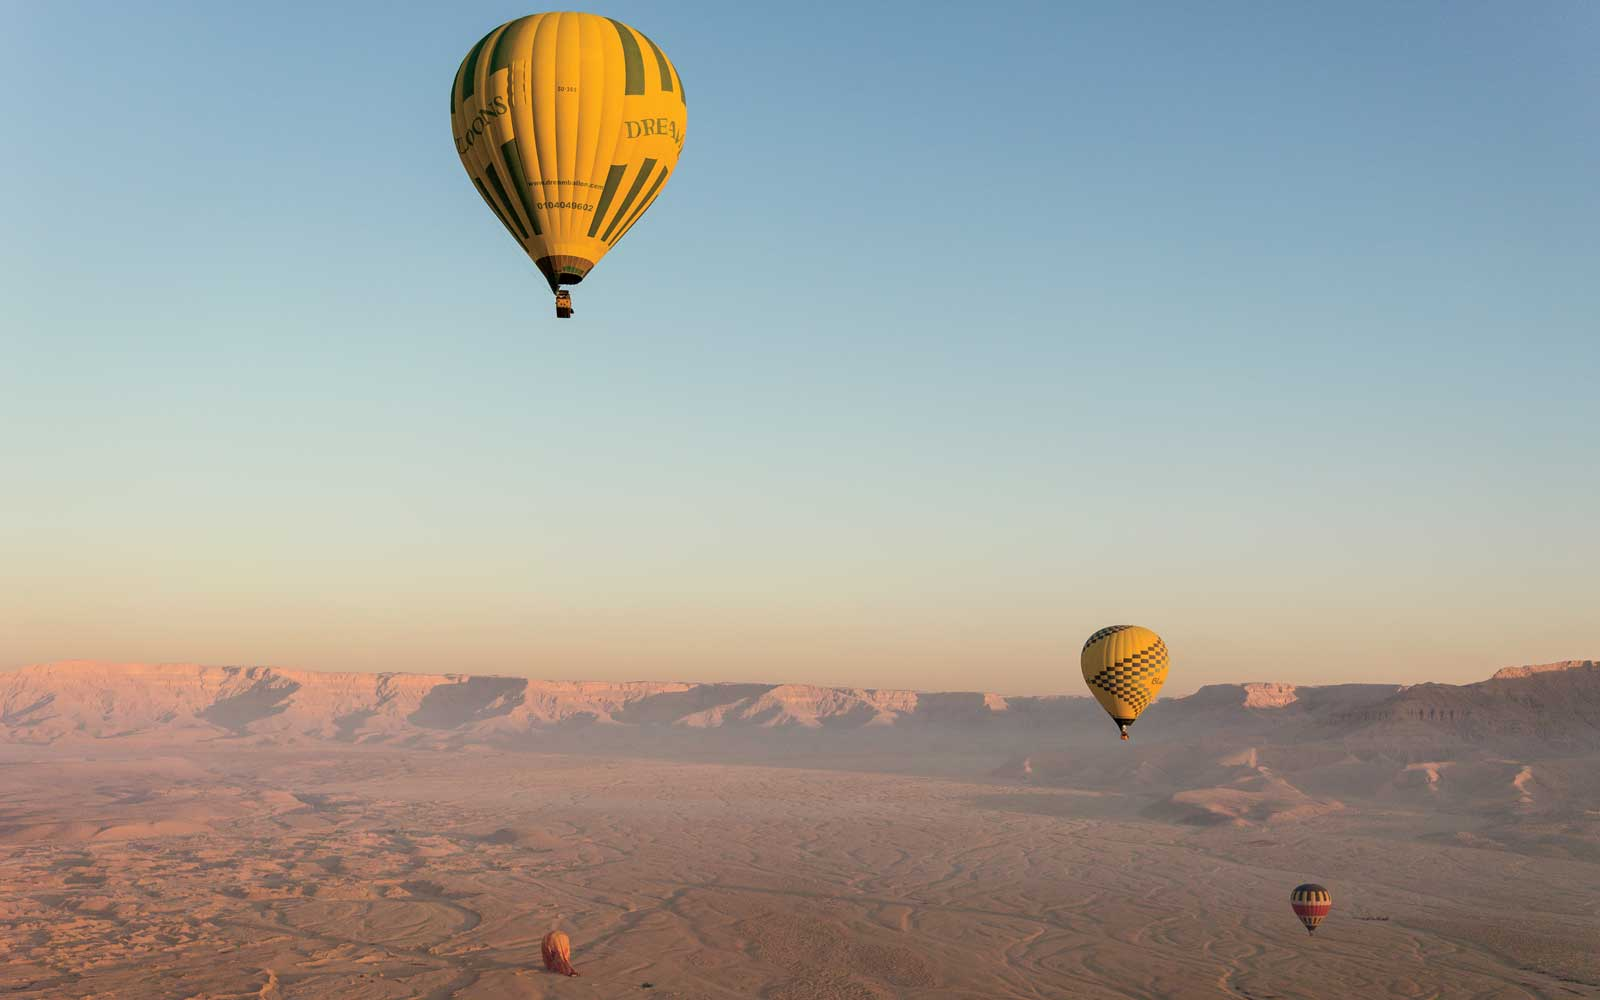 Hot air balloons over the Valley of the Kings in Luxor, Egypt